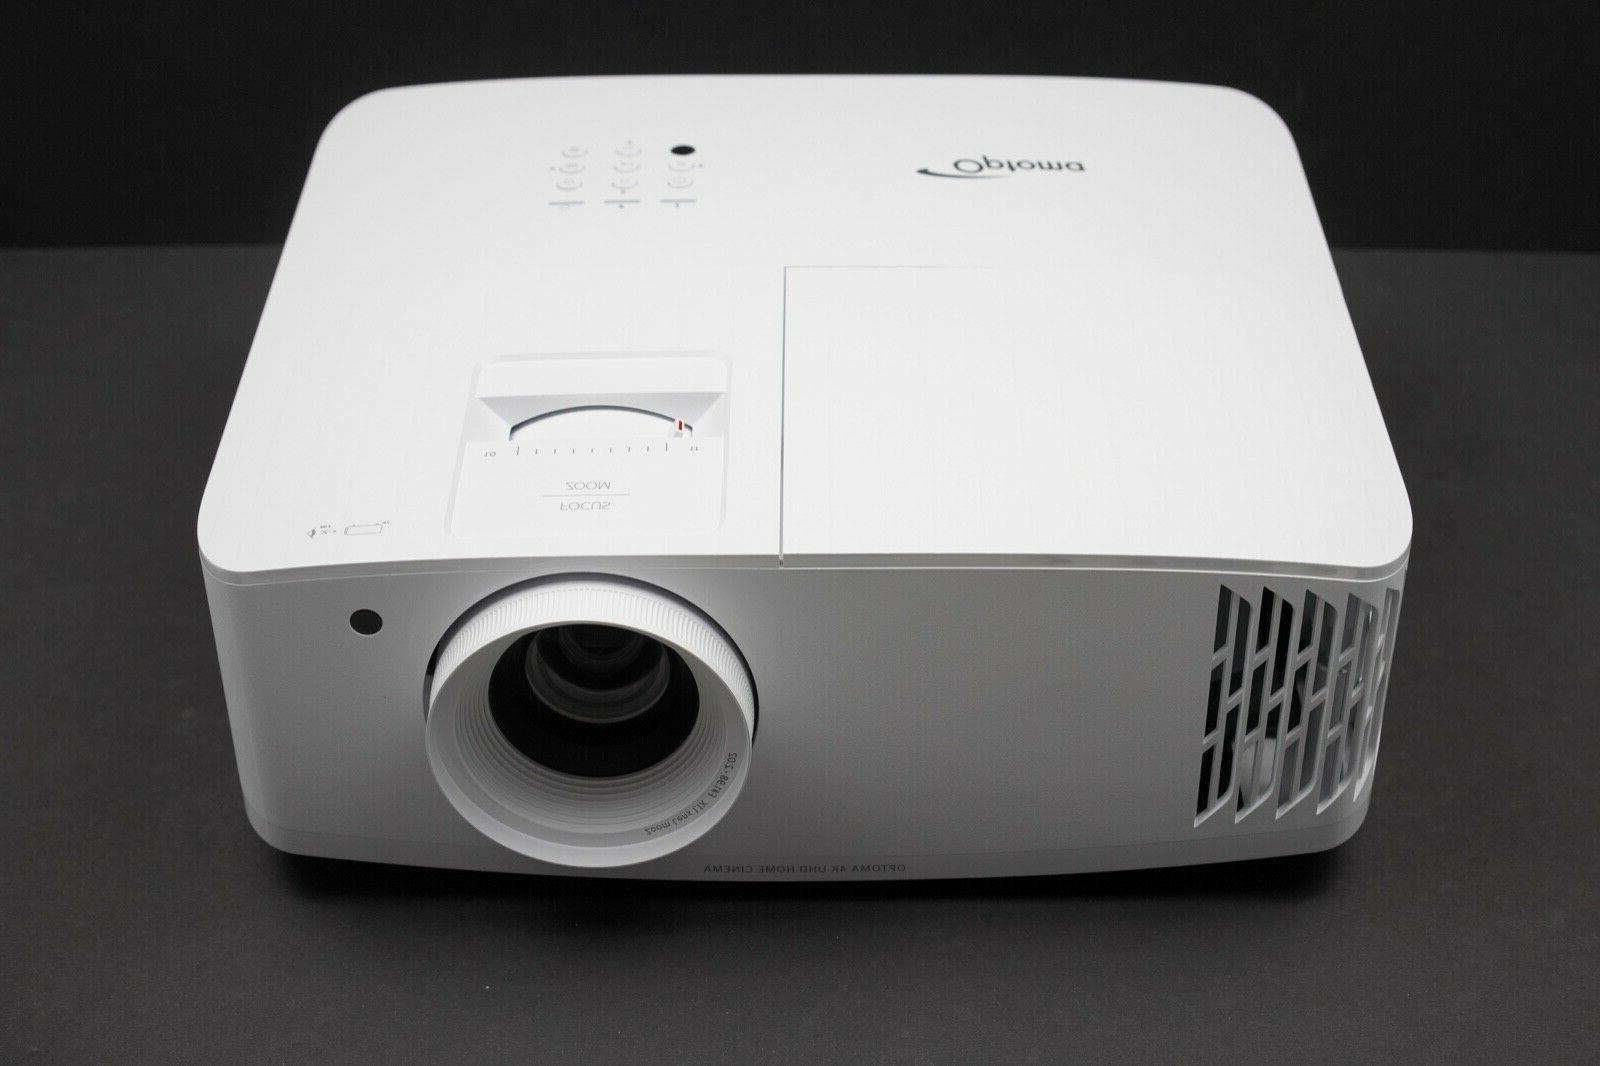 4k uhd home theater and gaming projector